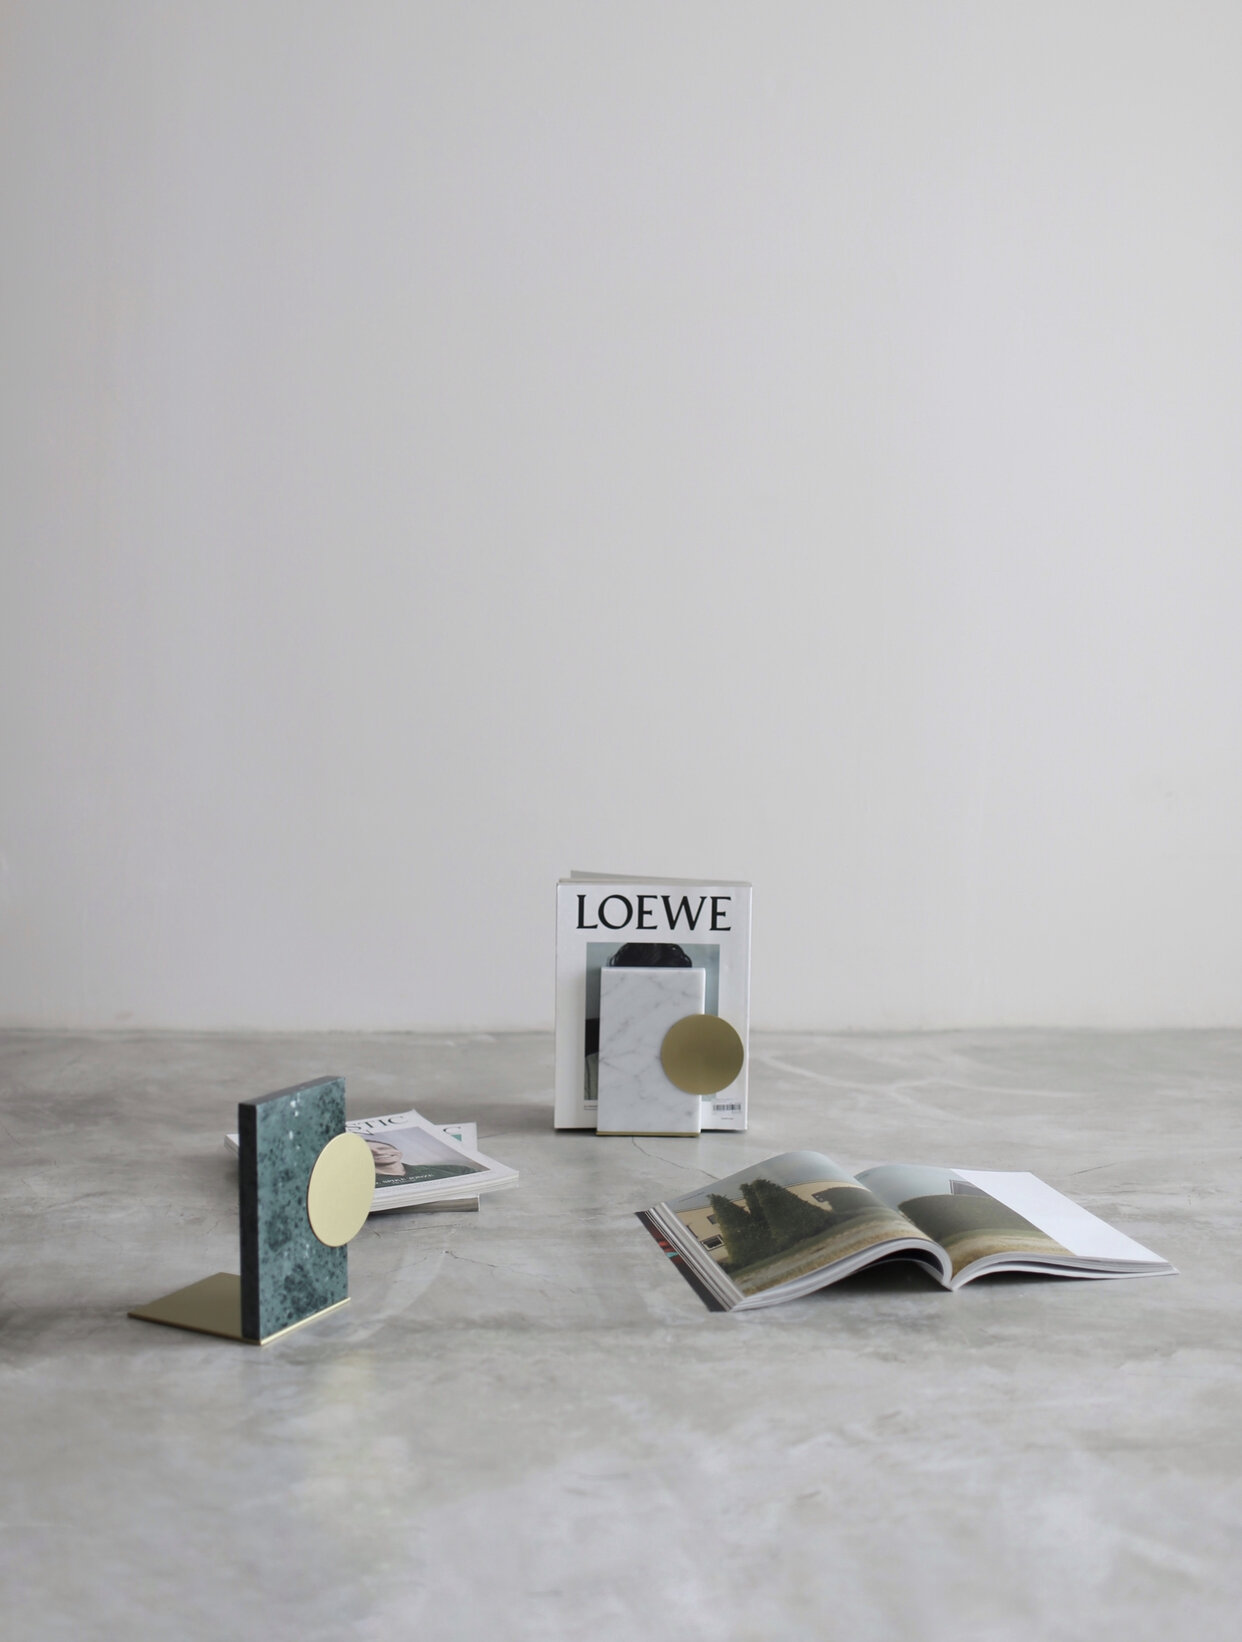 BUKU   Marble base with brass hardware bookends  -   SIZE   17cm(W) x 15cm(D) x 20cm(H)  -   MARBLE OPTIONS   Carrara, Nero Marquina, Royal Green  -   PRICE   Rp. 750.000